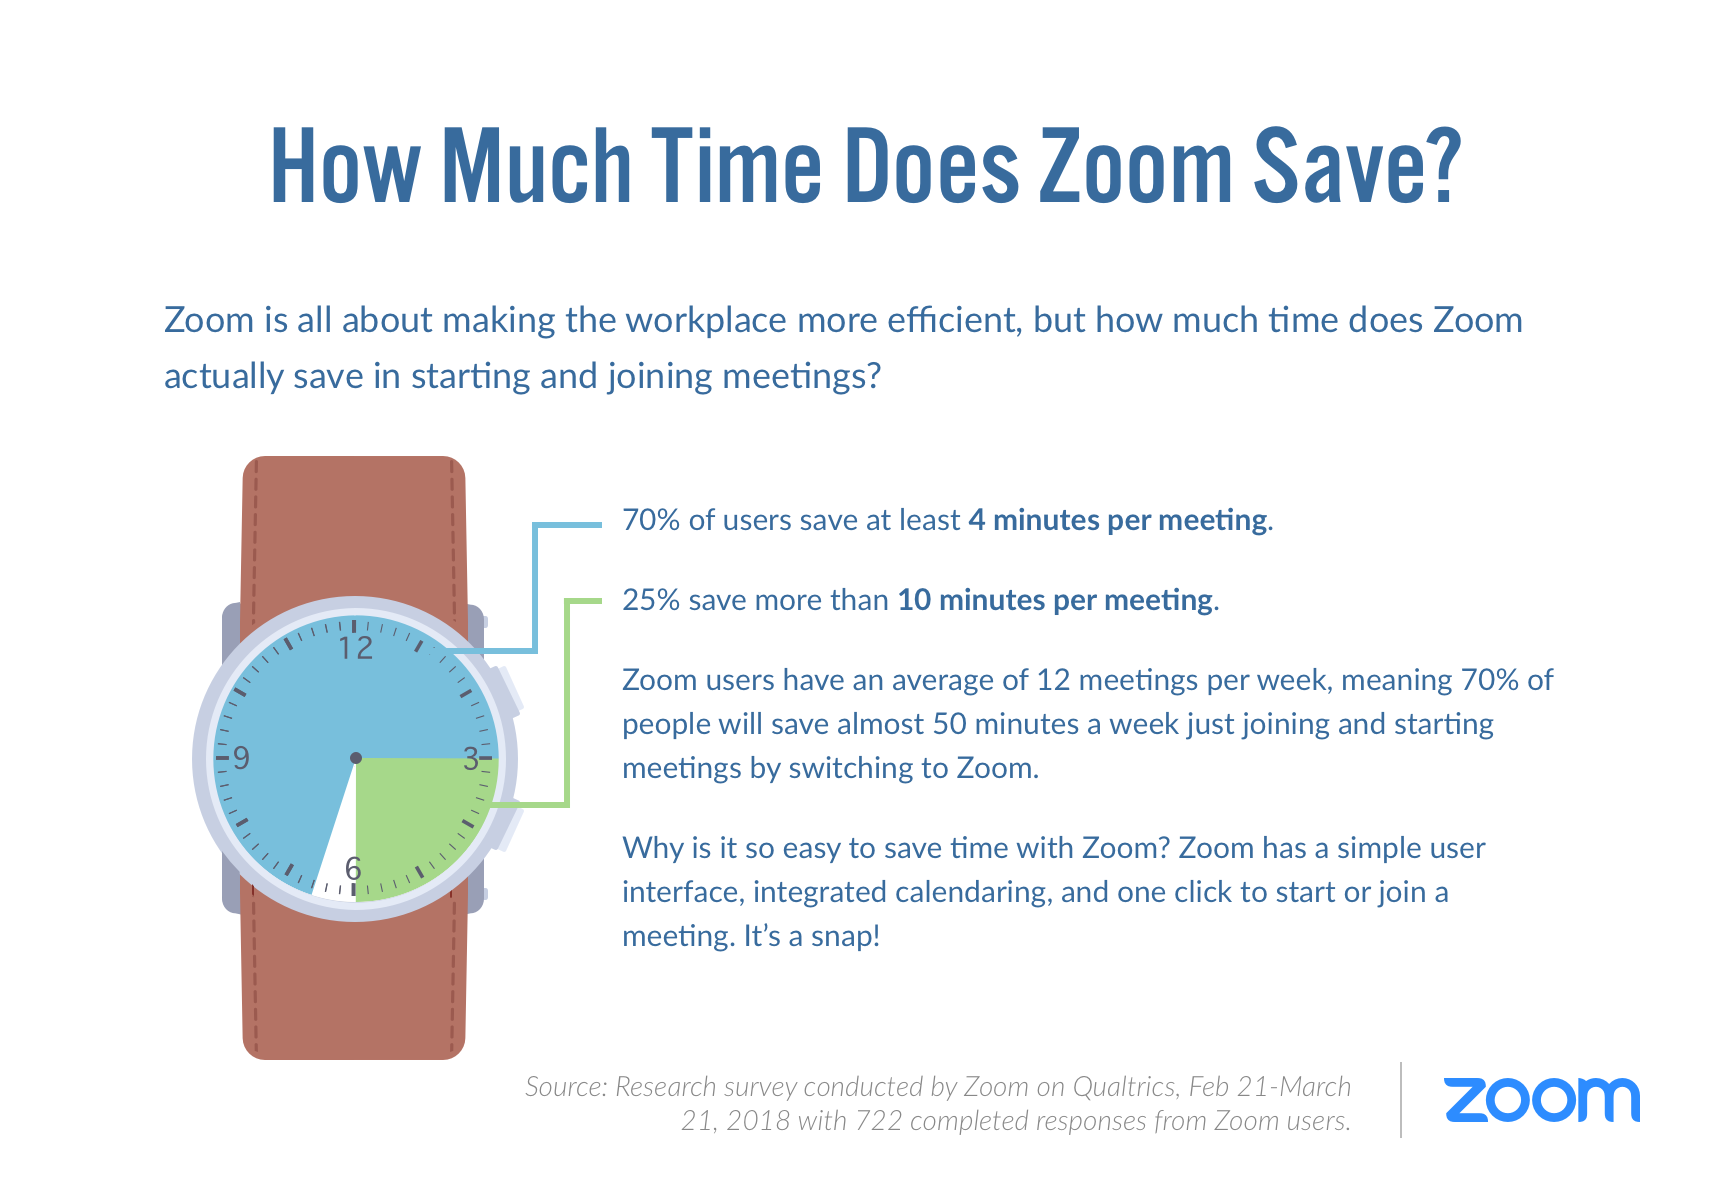 Time Savings with Zoom Image